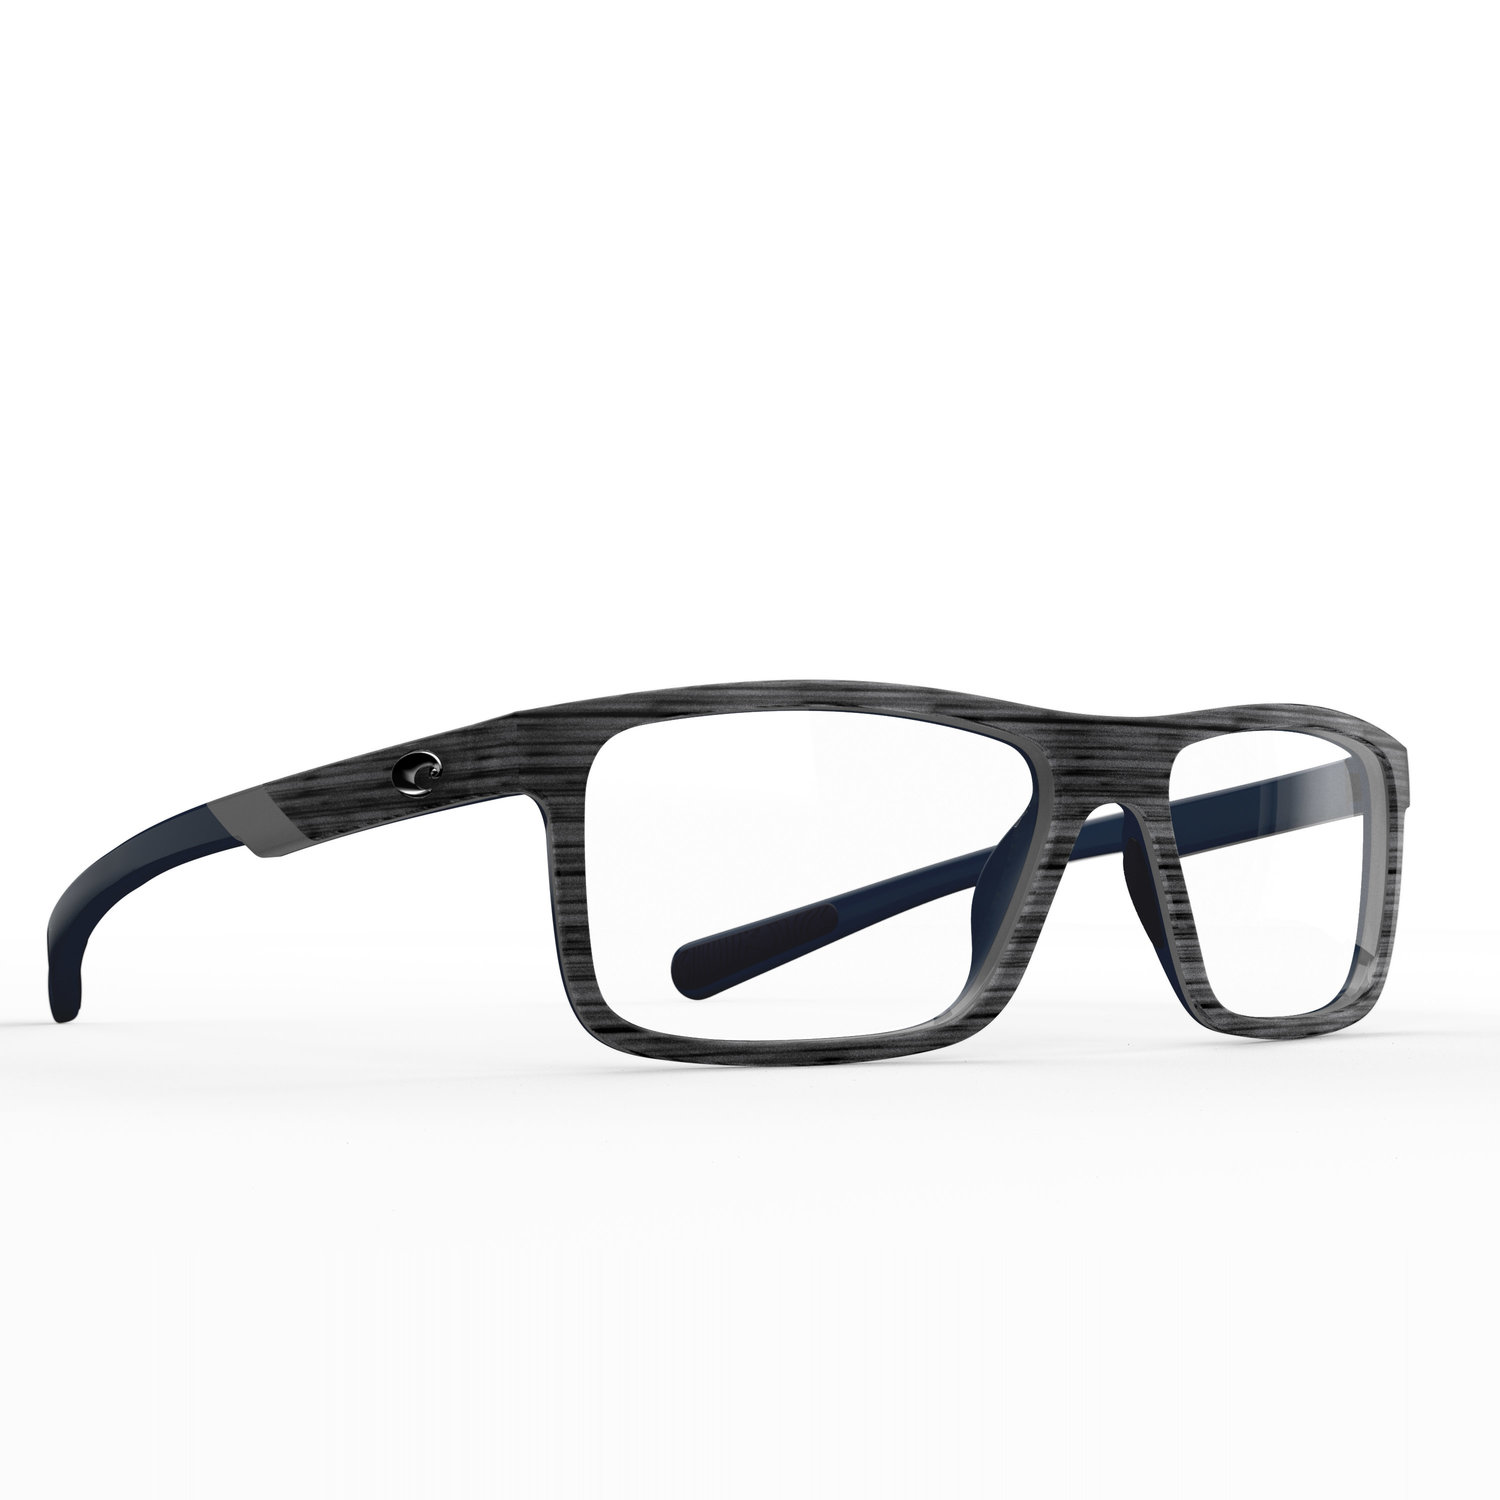 Costa Introduces New Optical Eyeglass Collection, Built for ...